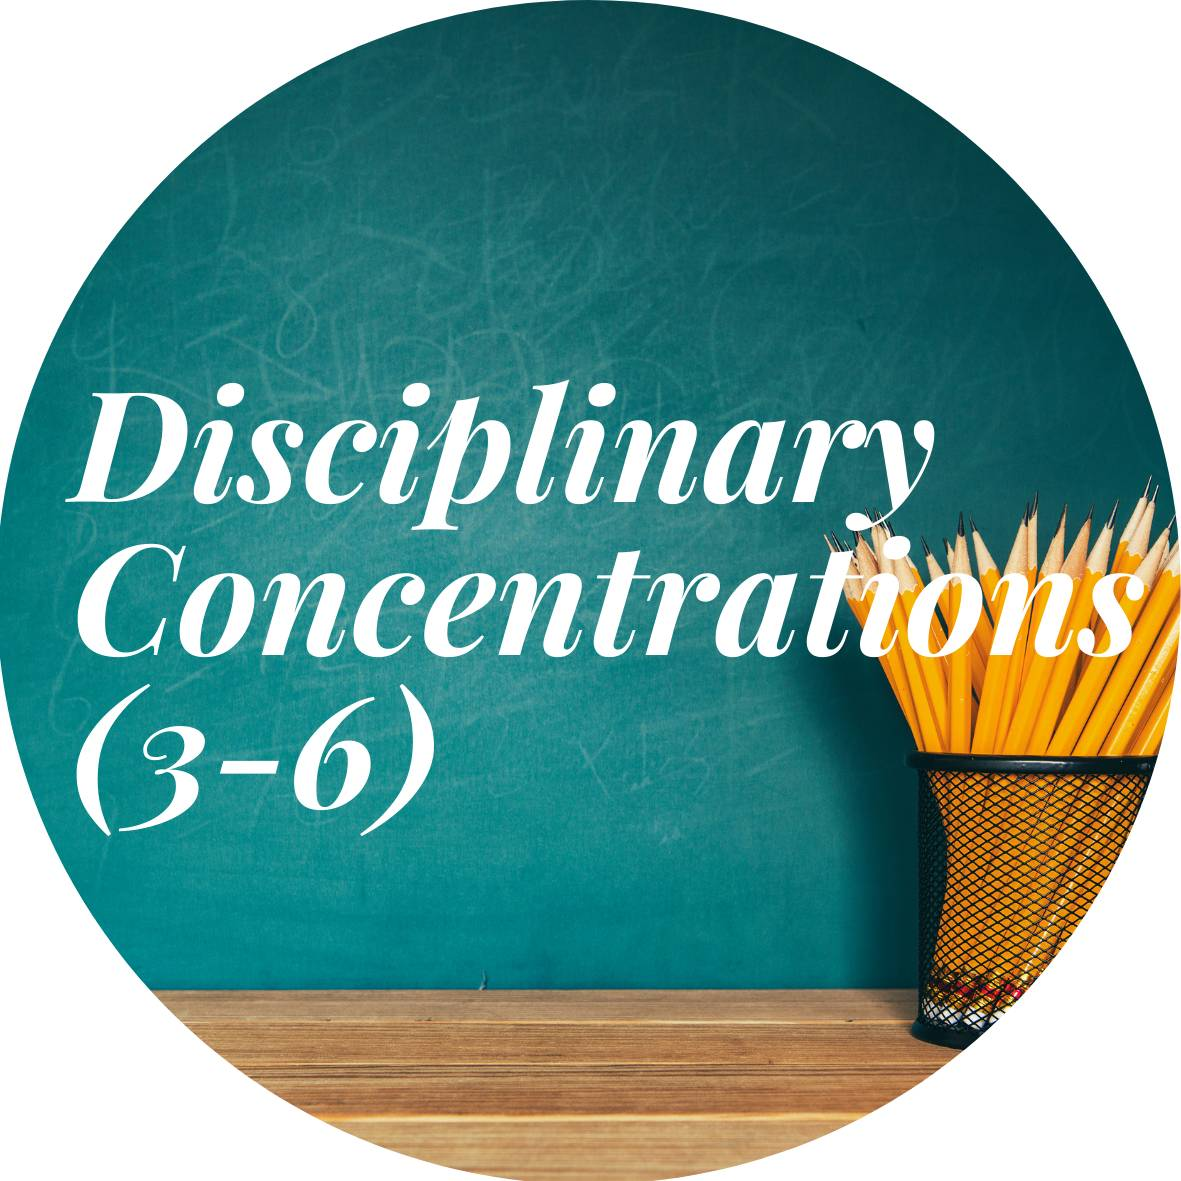 Disciplinary Concentrations (3-6)